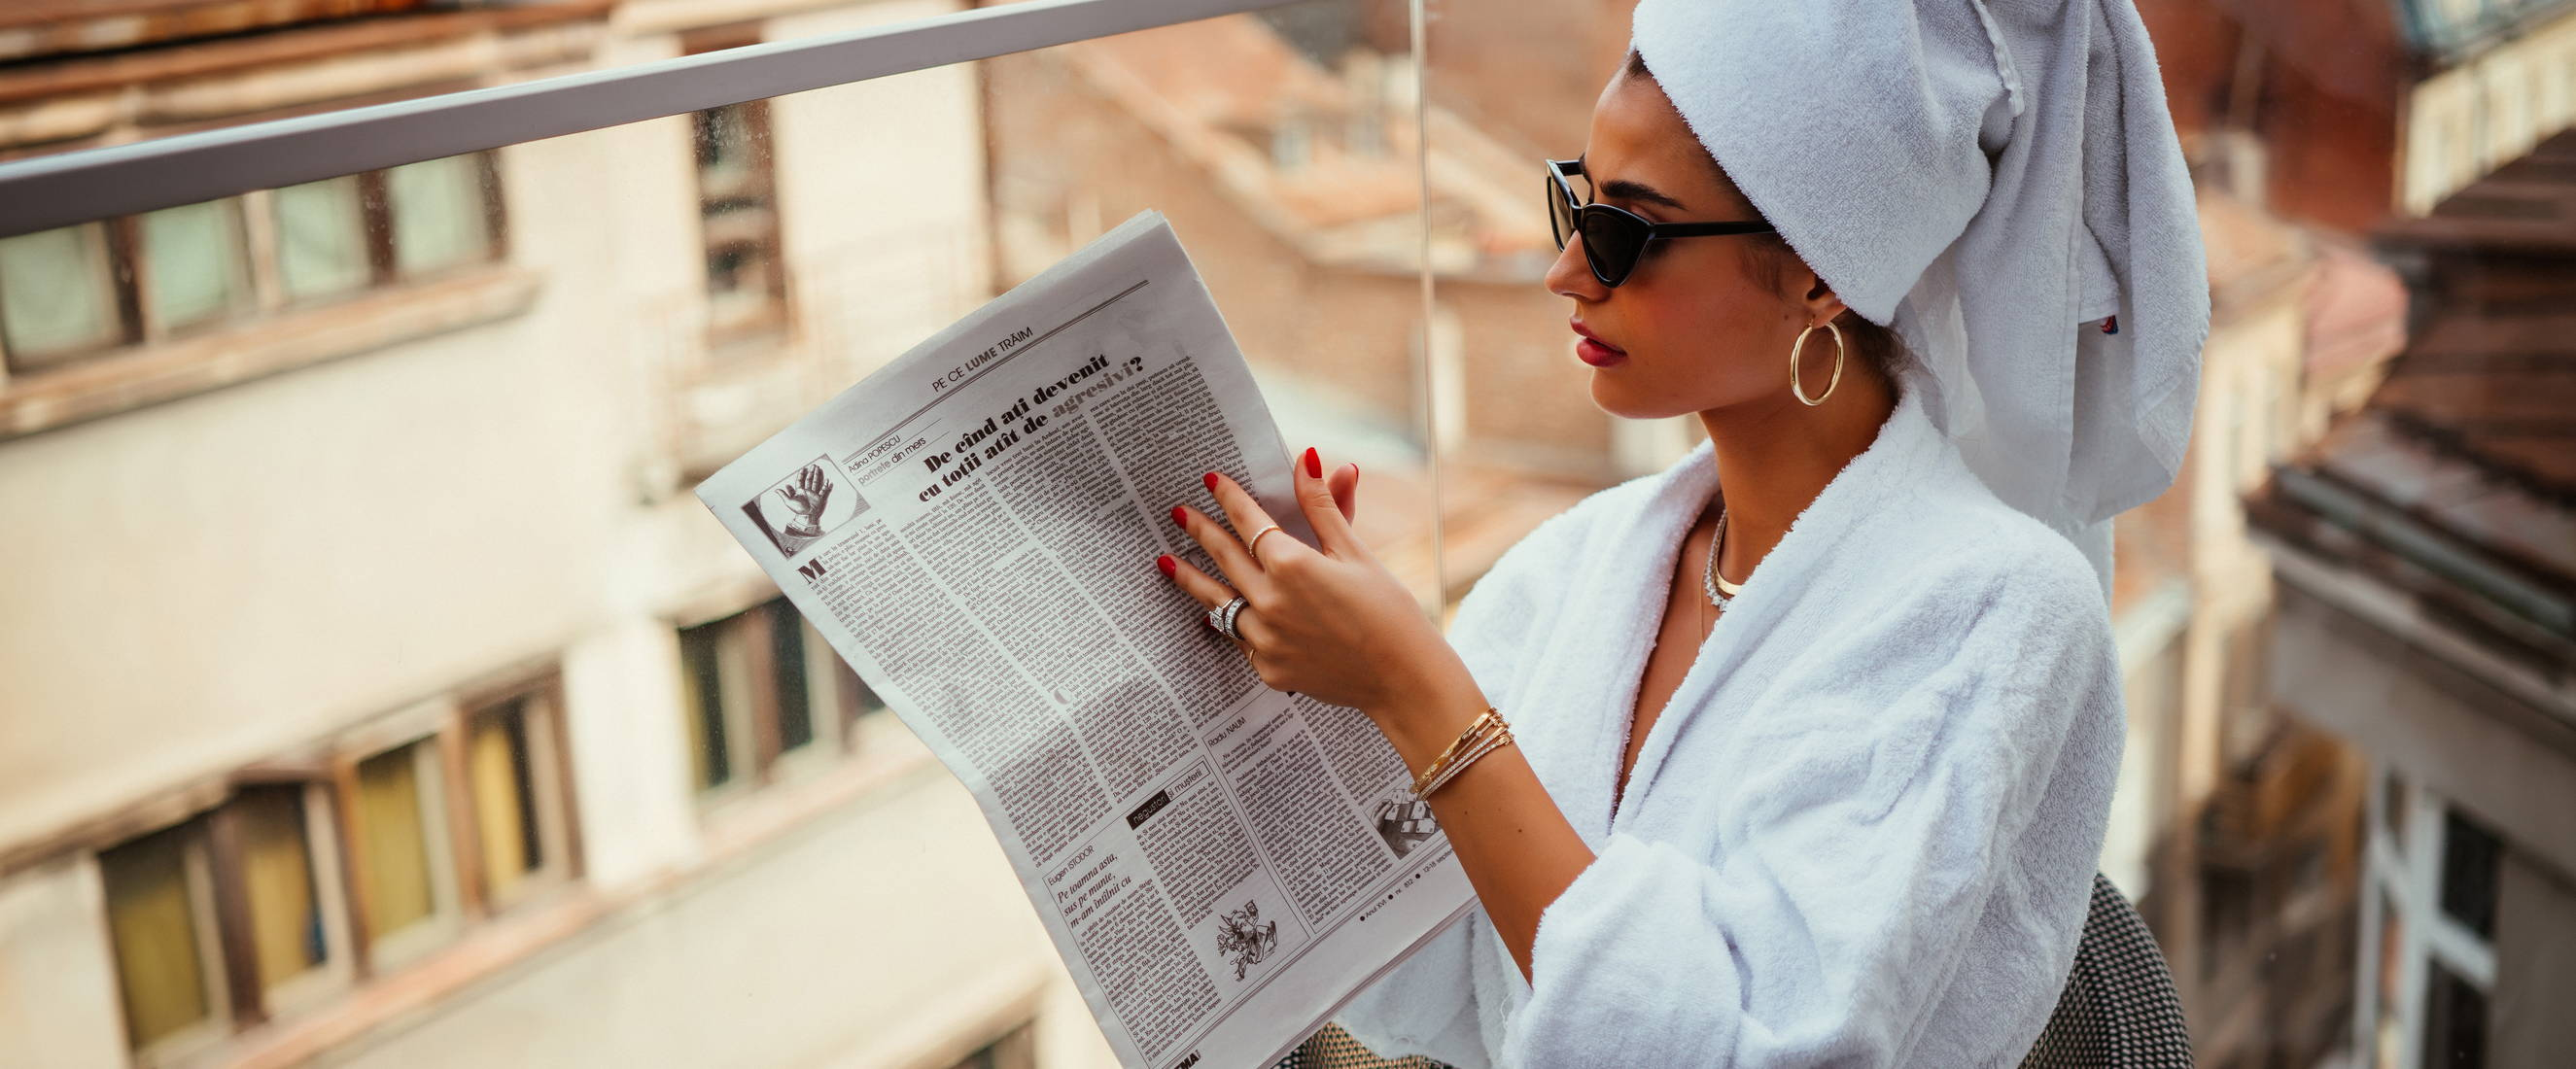 Model wearing Ring Concierge jewelry reading the newspaper.